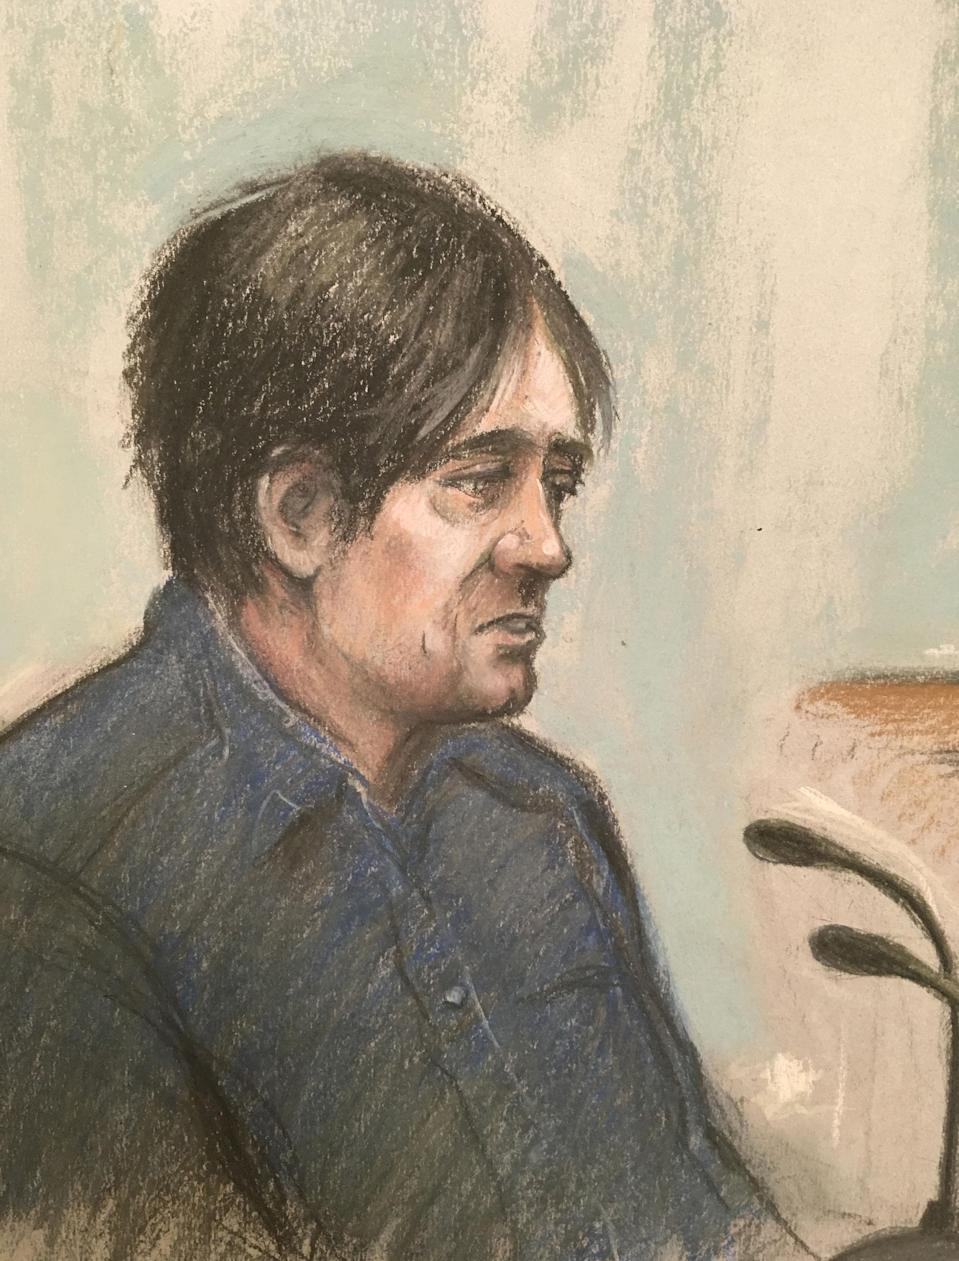 <em>Target – Darren Osborne told the court his original plan was to try and kill Labour leader Jeremy Corbyn (Pictures: PA)</em>